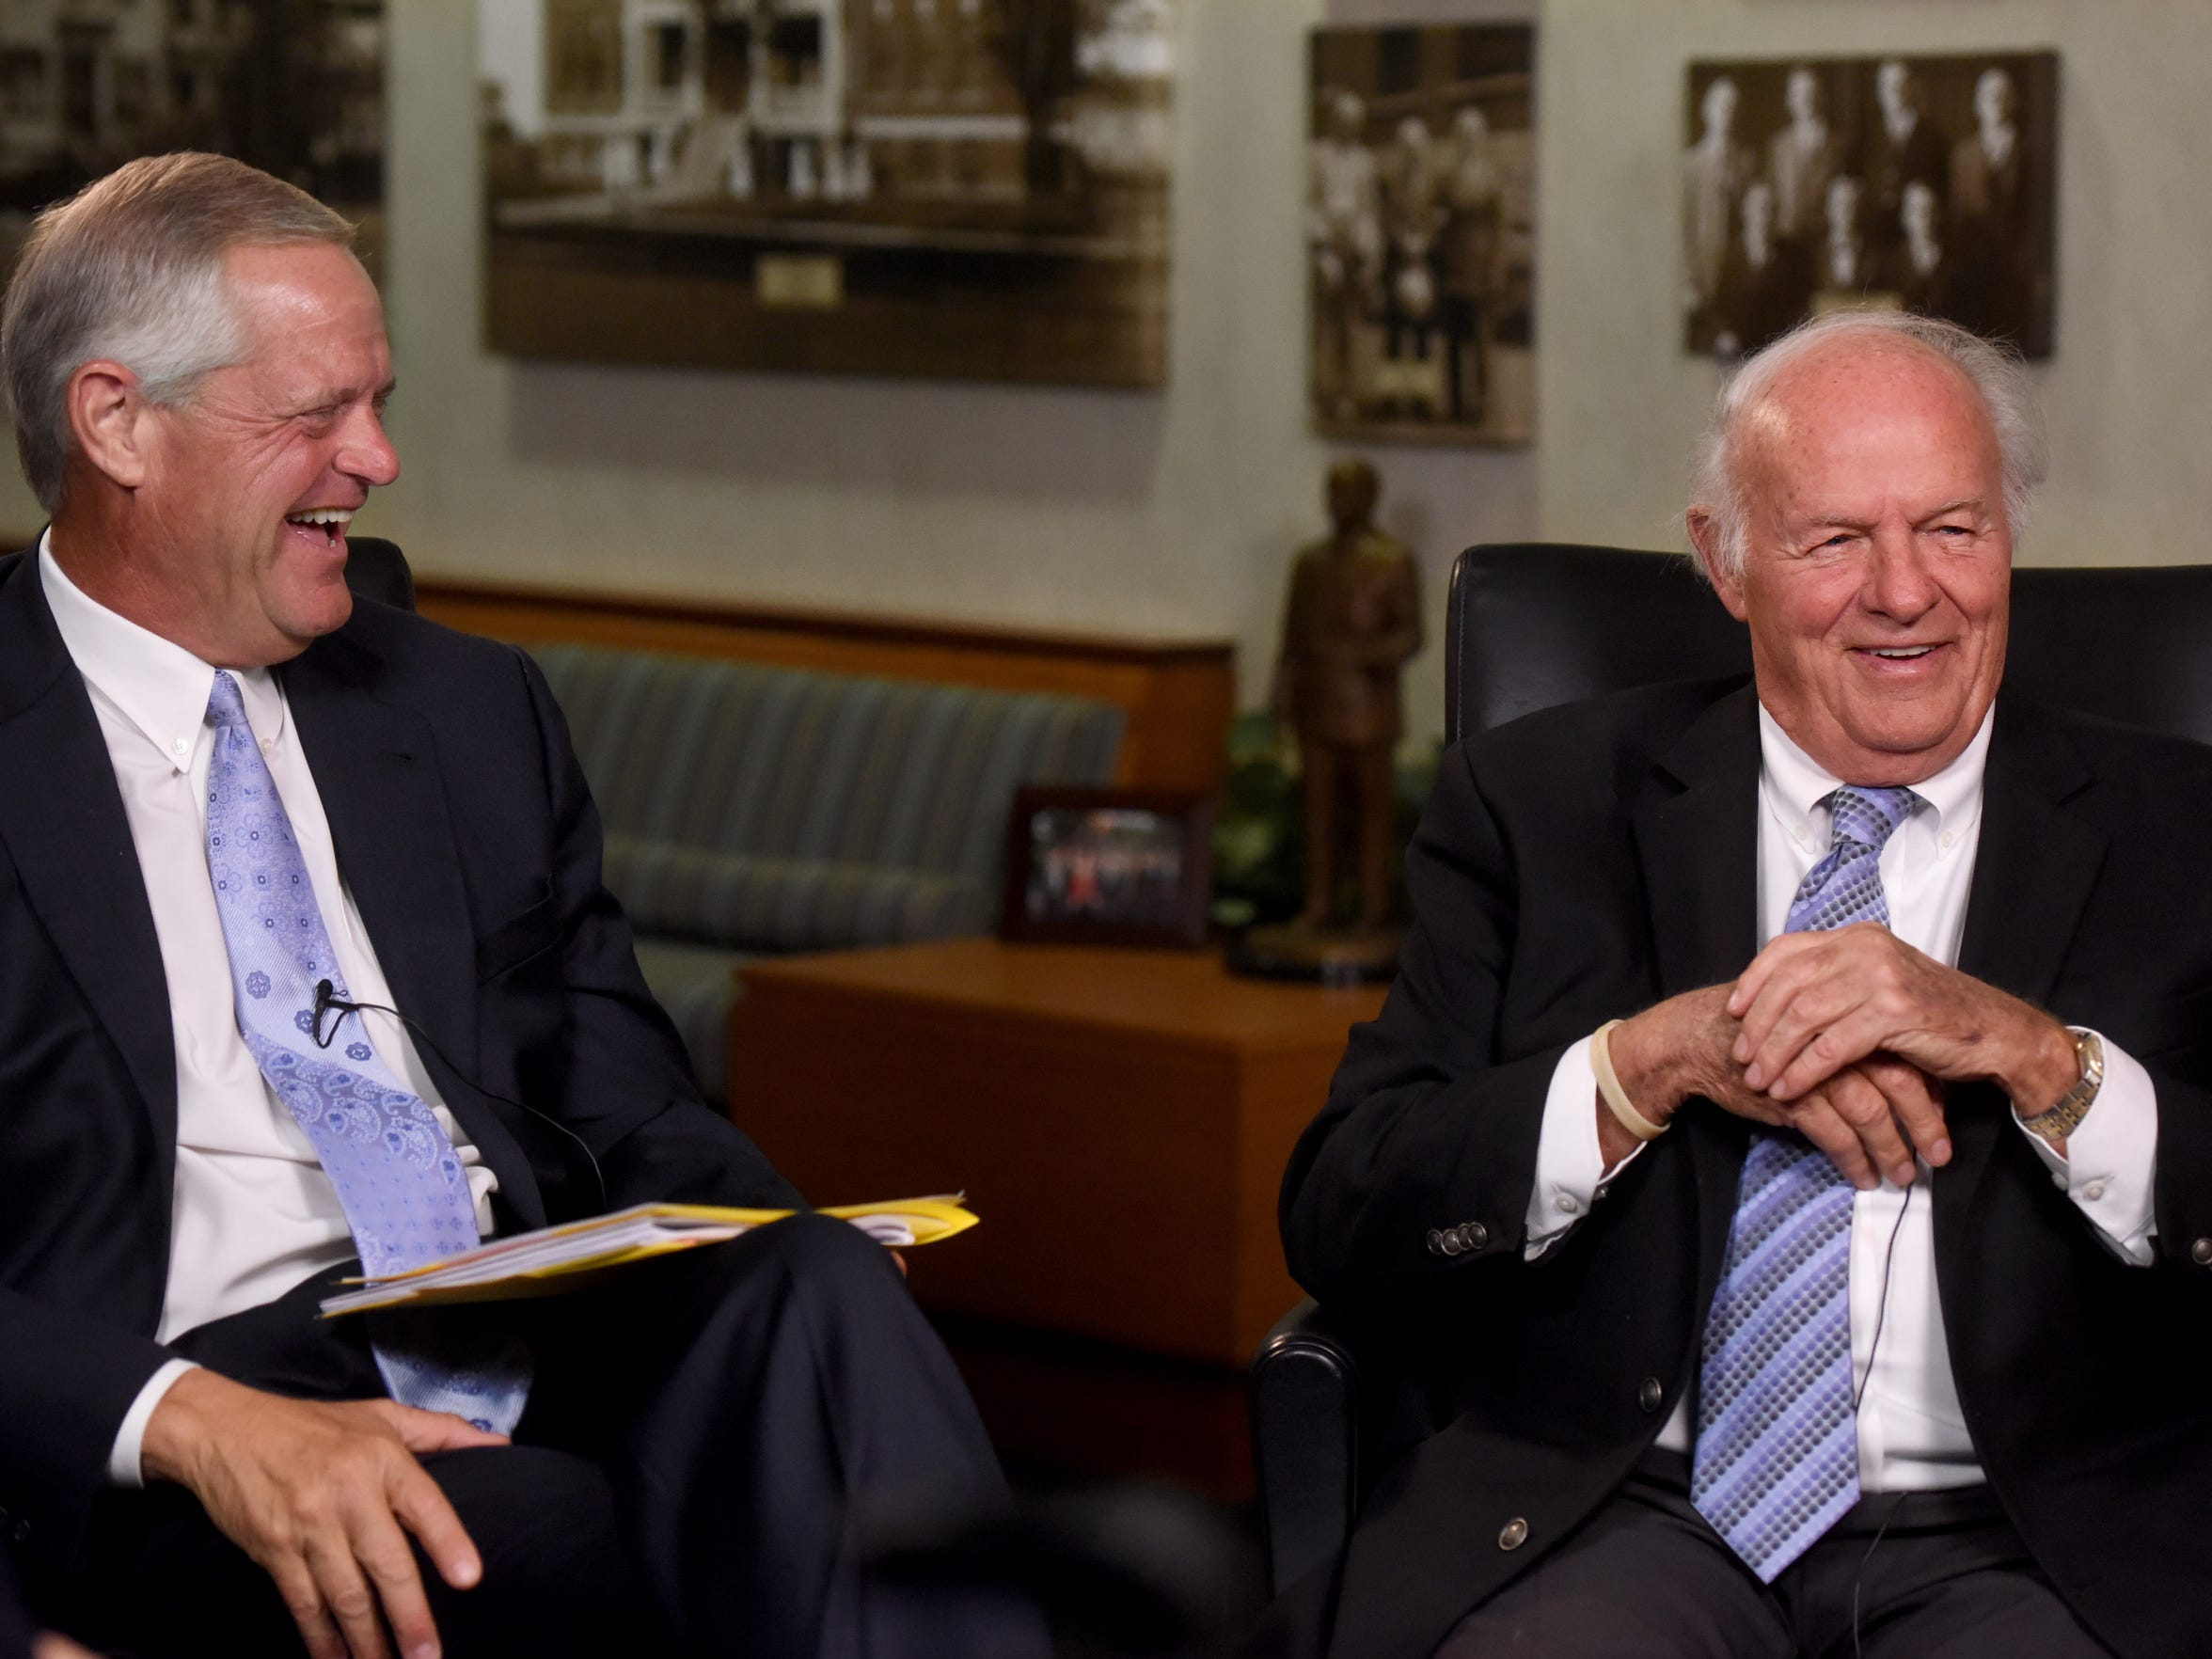 Sanford Health CEO Kelby Krabbenhoft (left) and T. Denny Sanford talk with Argus Leader Media during an exclusive interview in 2017.